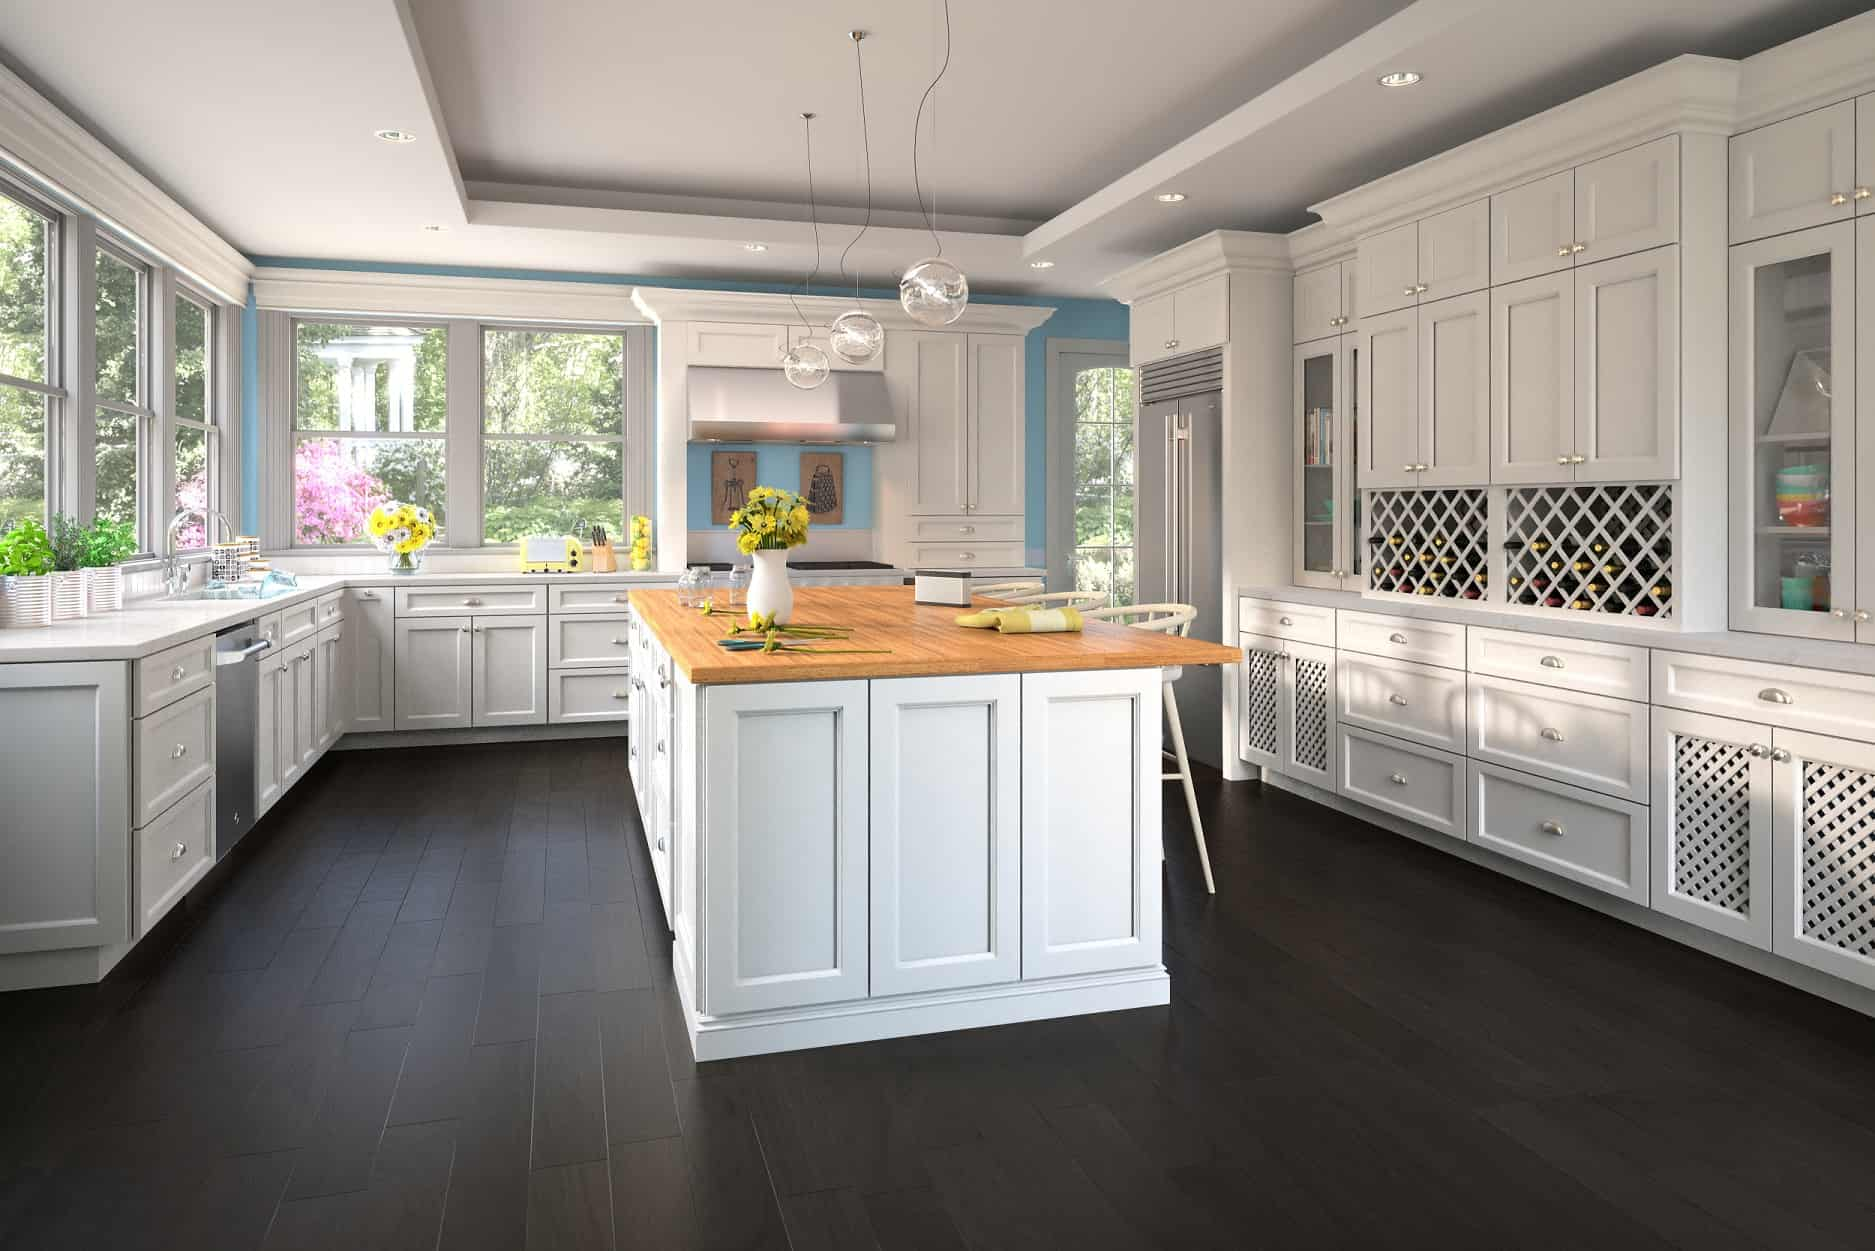 How Much Does It Cost To Refinish Your Kitchen Cabinets ...